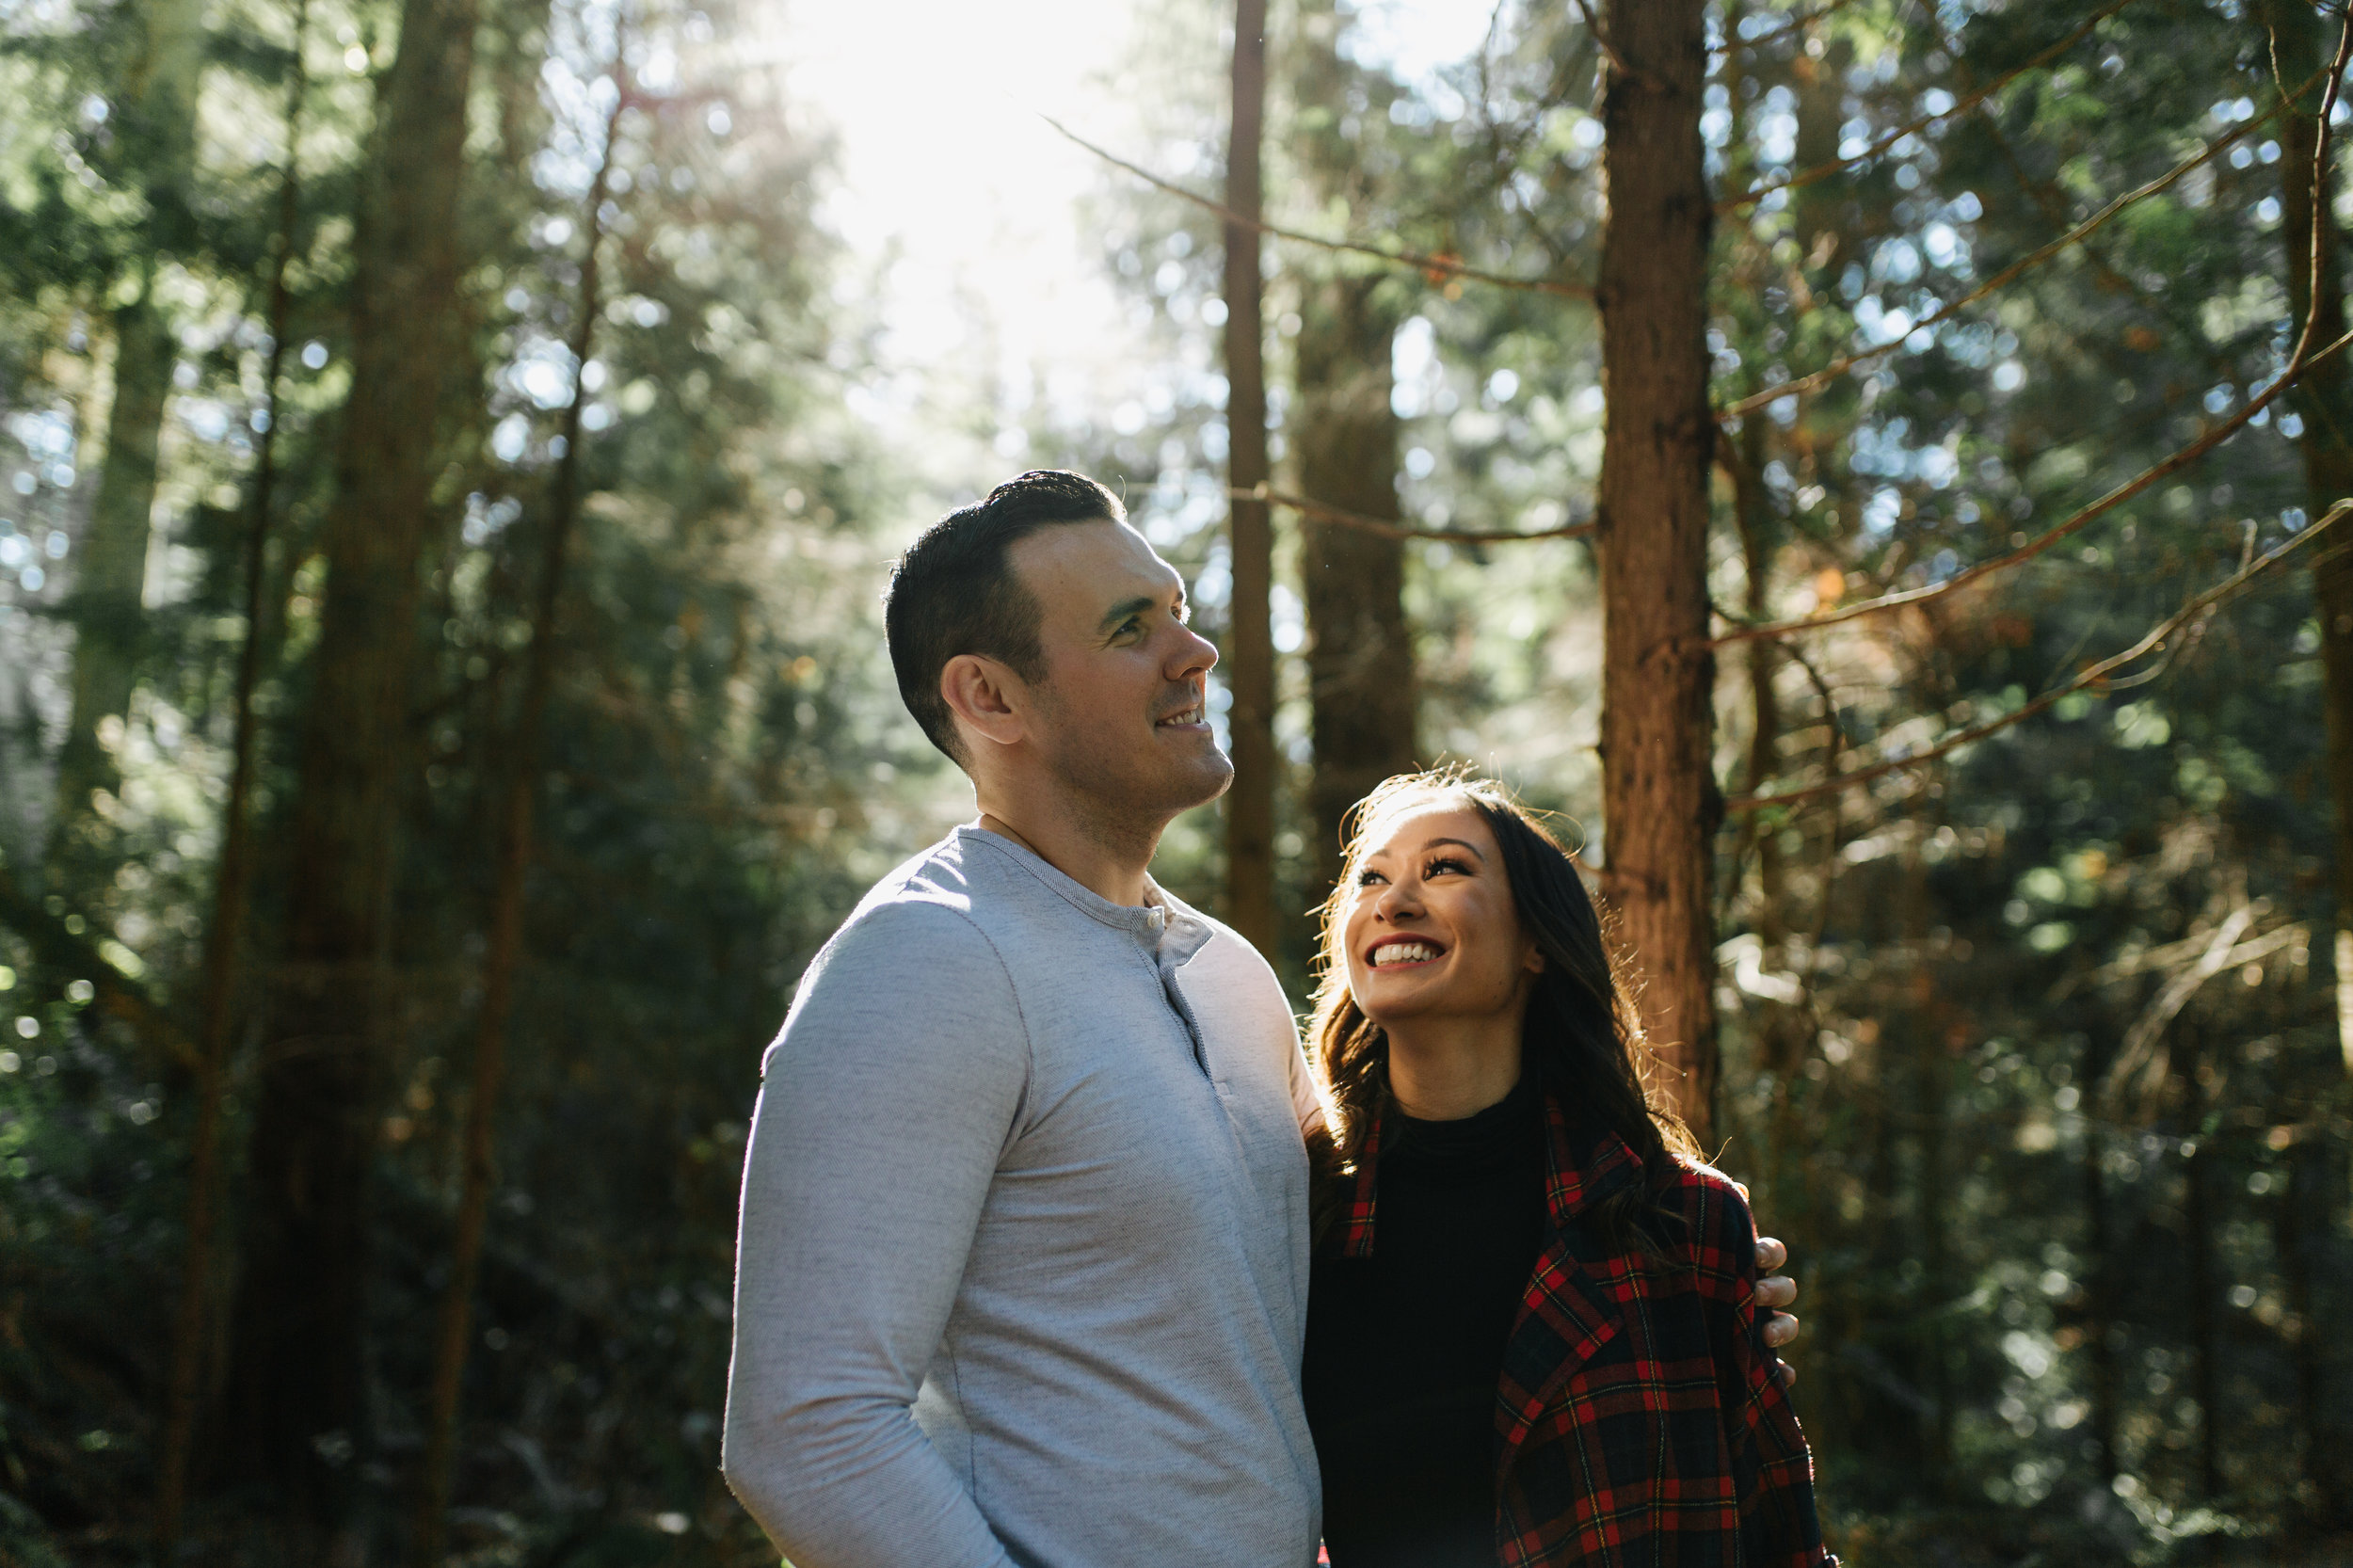 herafilms_prewedding_jayne_connor_hera_selects-3.jpg